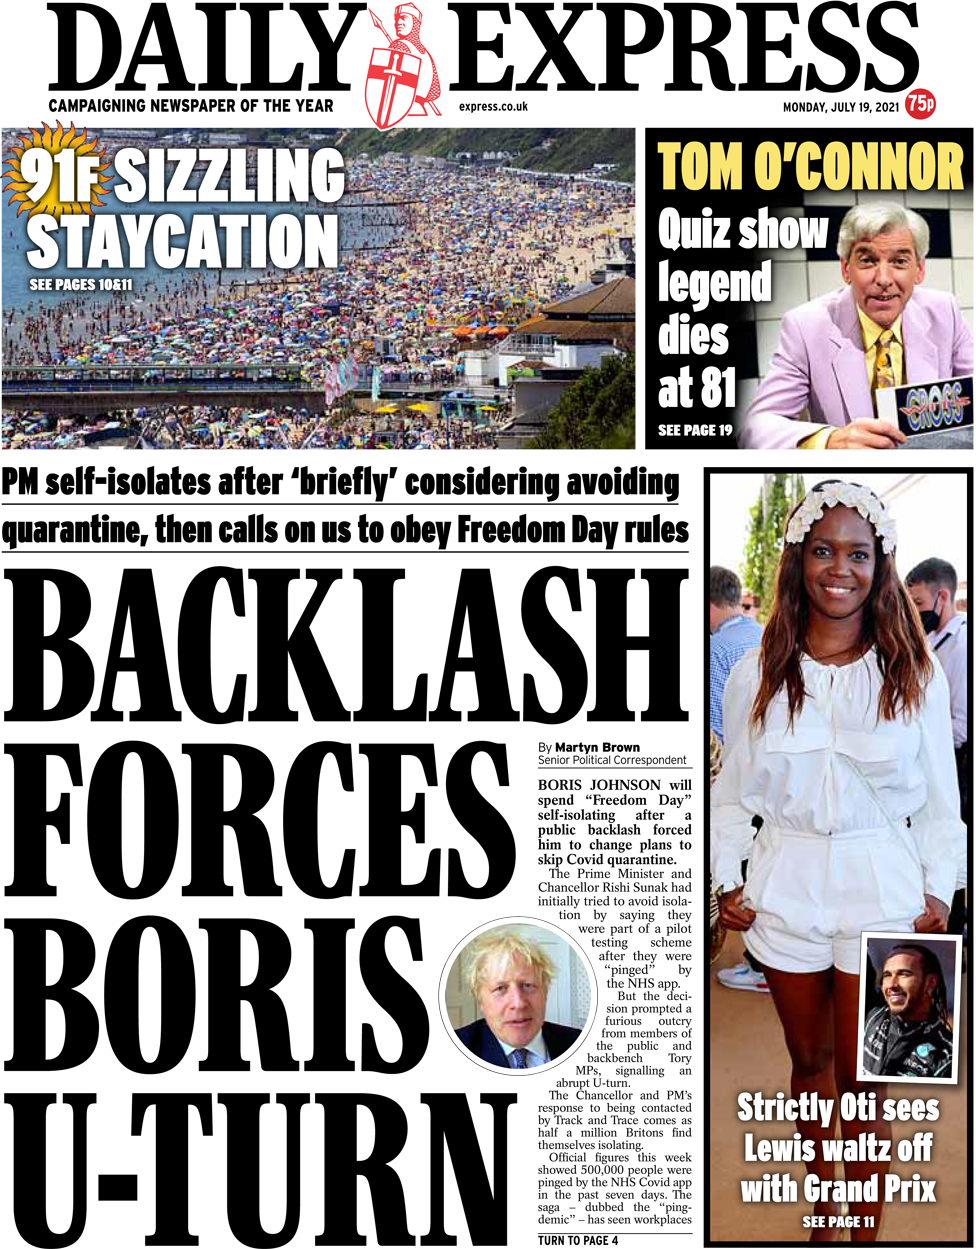 The Daily Express front page 19 July 2021